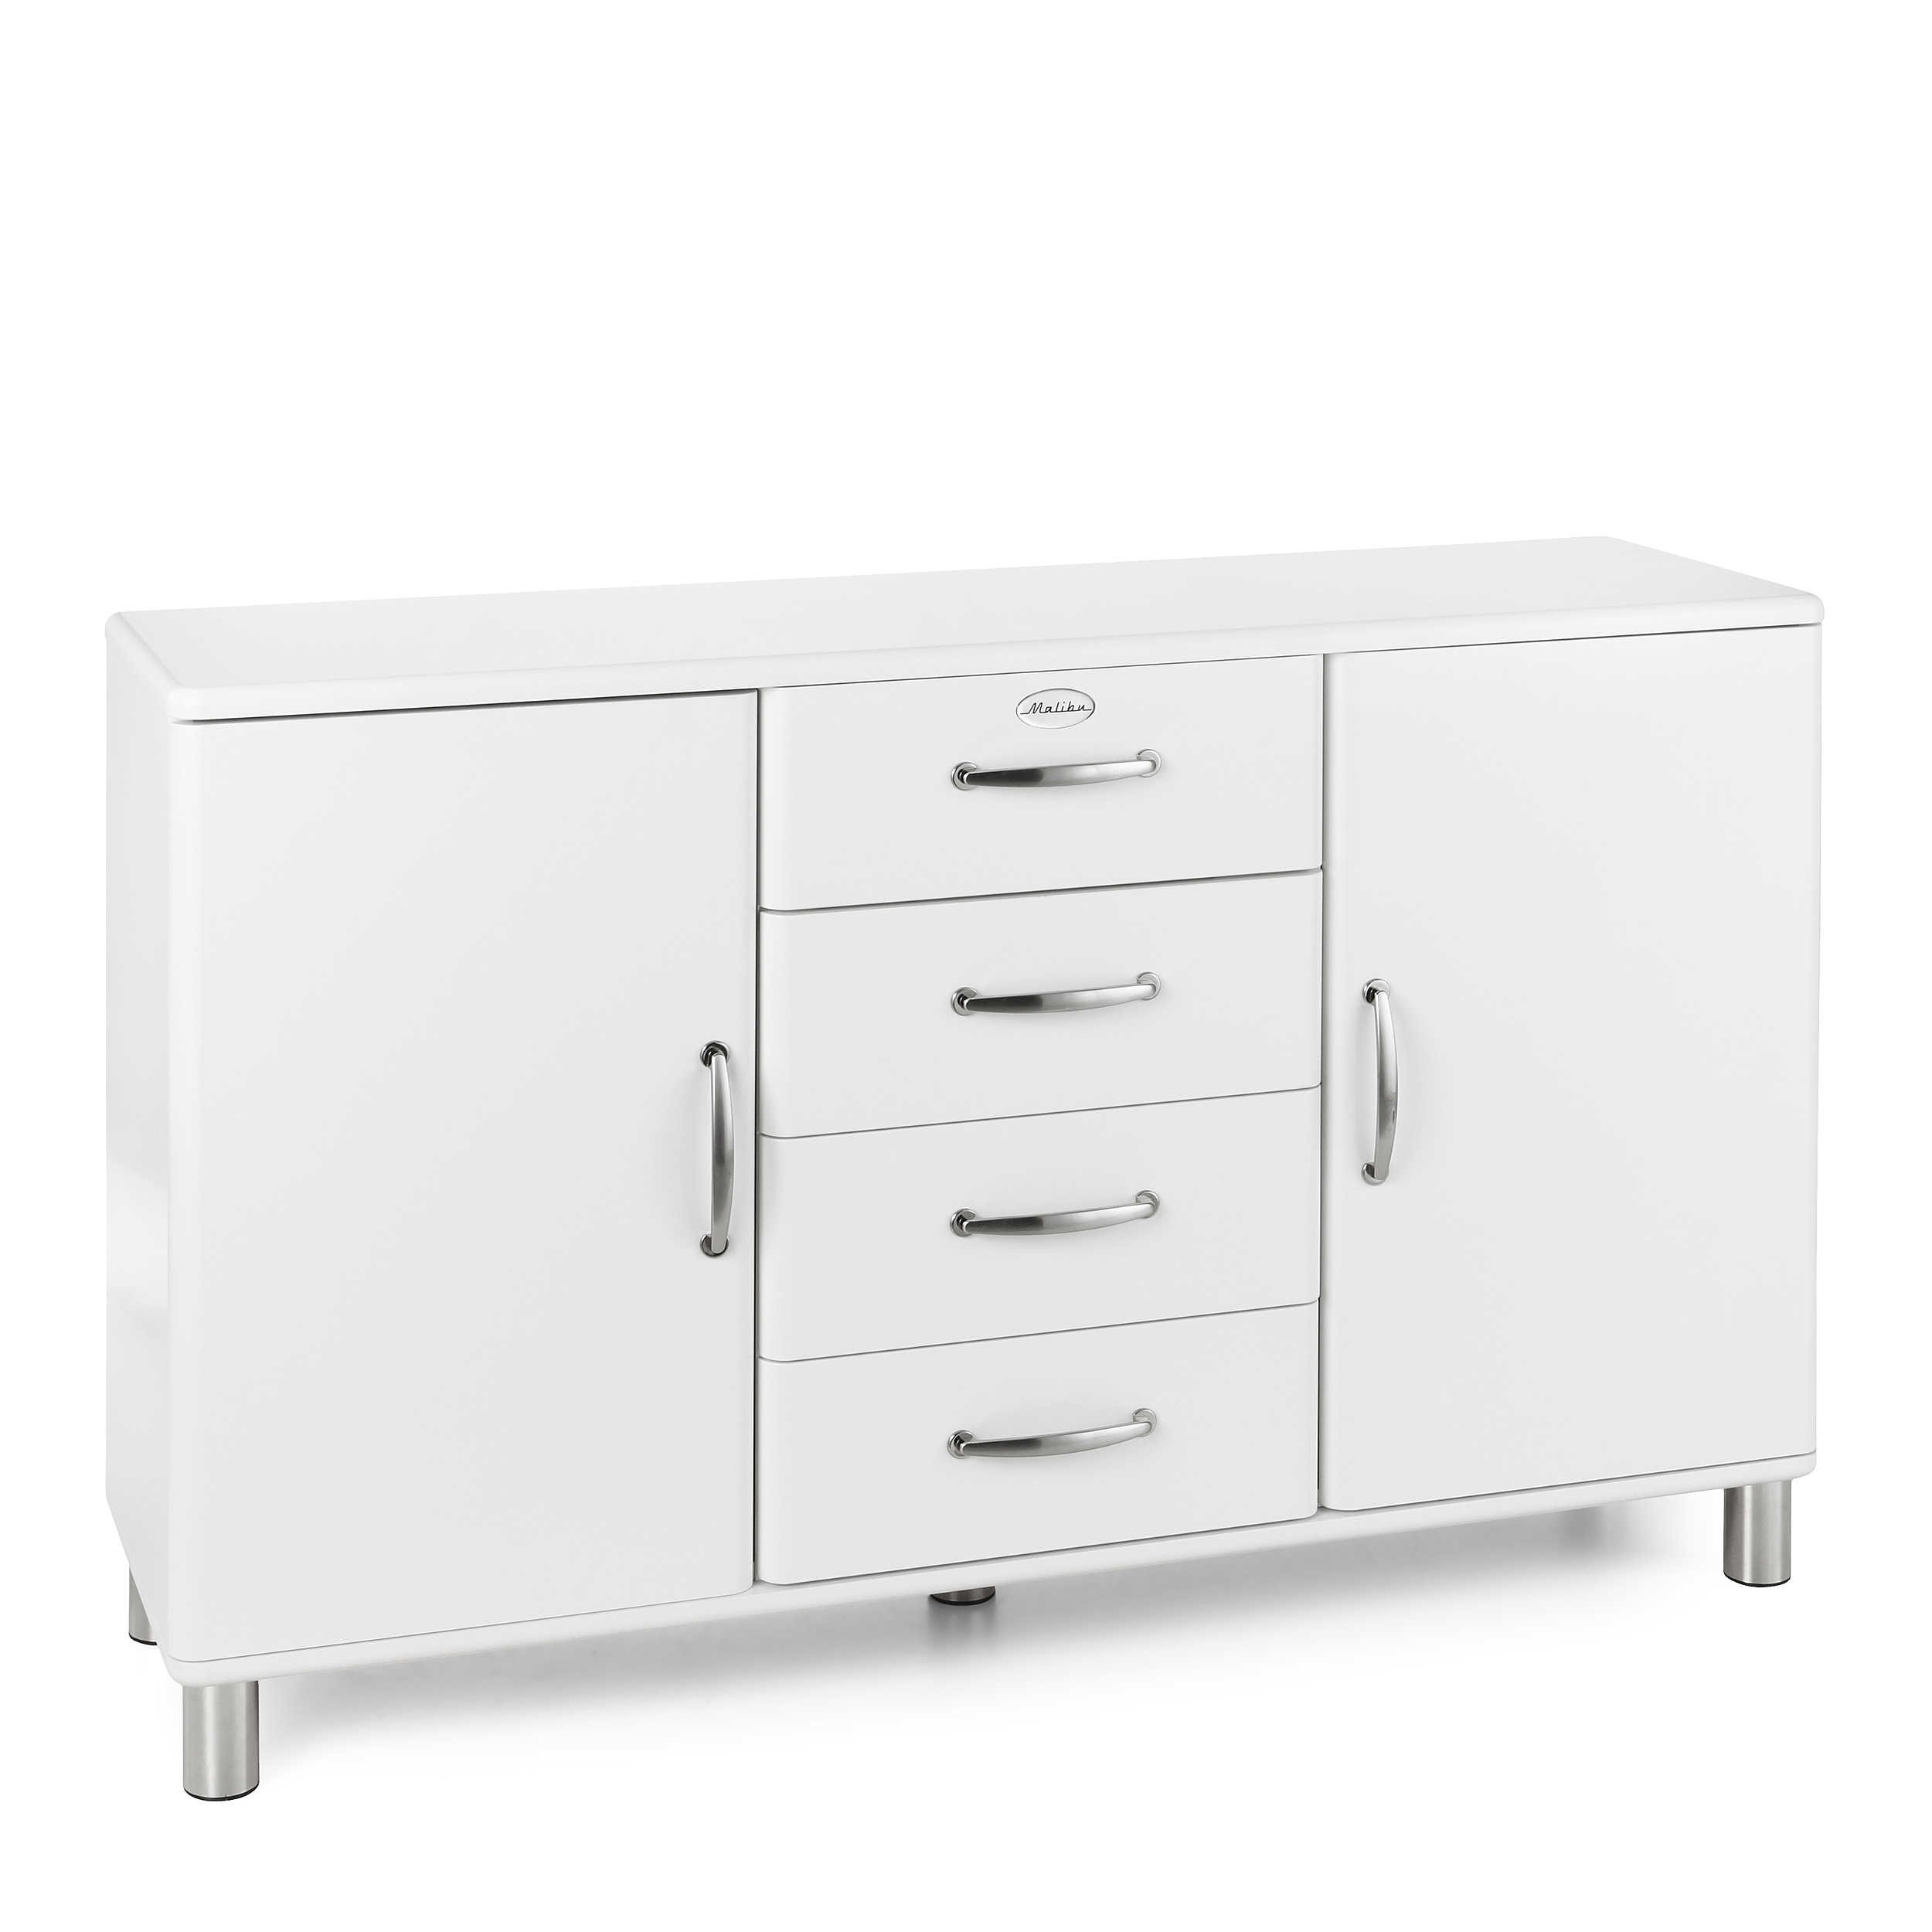 tenzo sideboard malibu wei lack hochglanz 146 cm online kaufen bei woonio. Black Bedroom Furniture Sets. Home Design Ideas